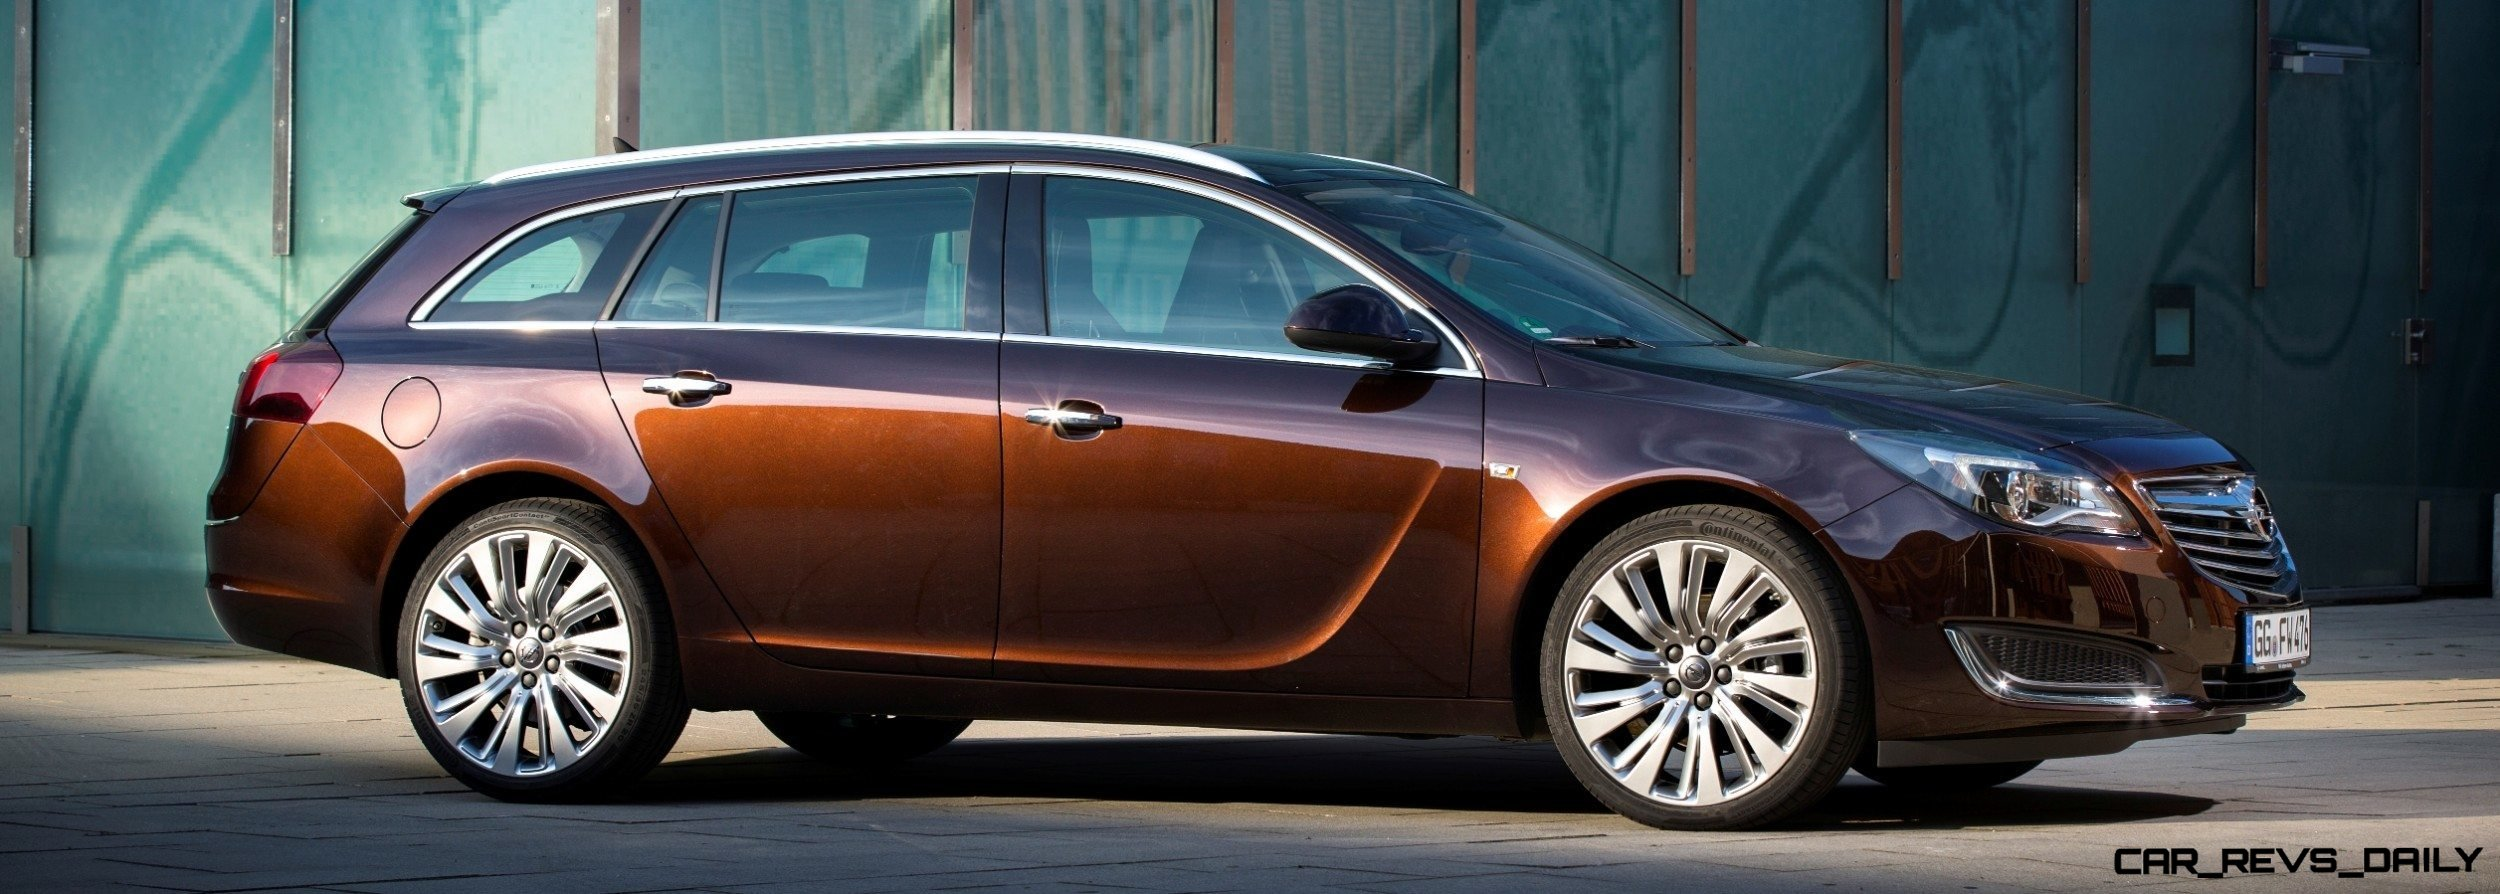 Opel-Insignia-Sports-Tourer-287570